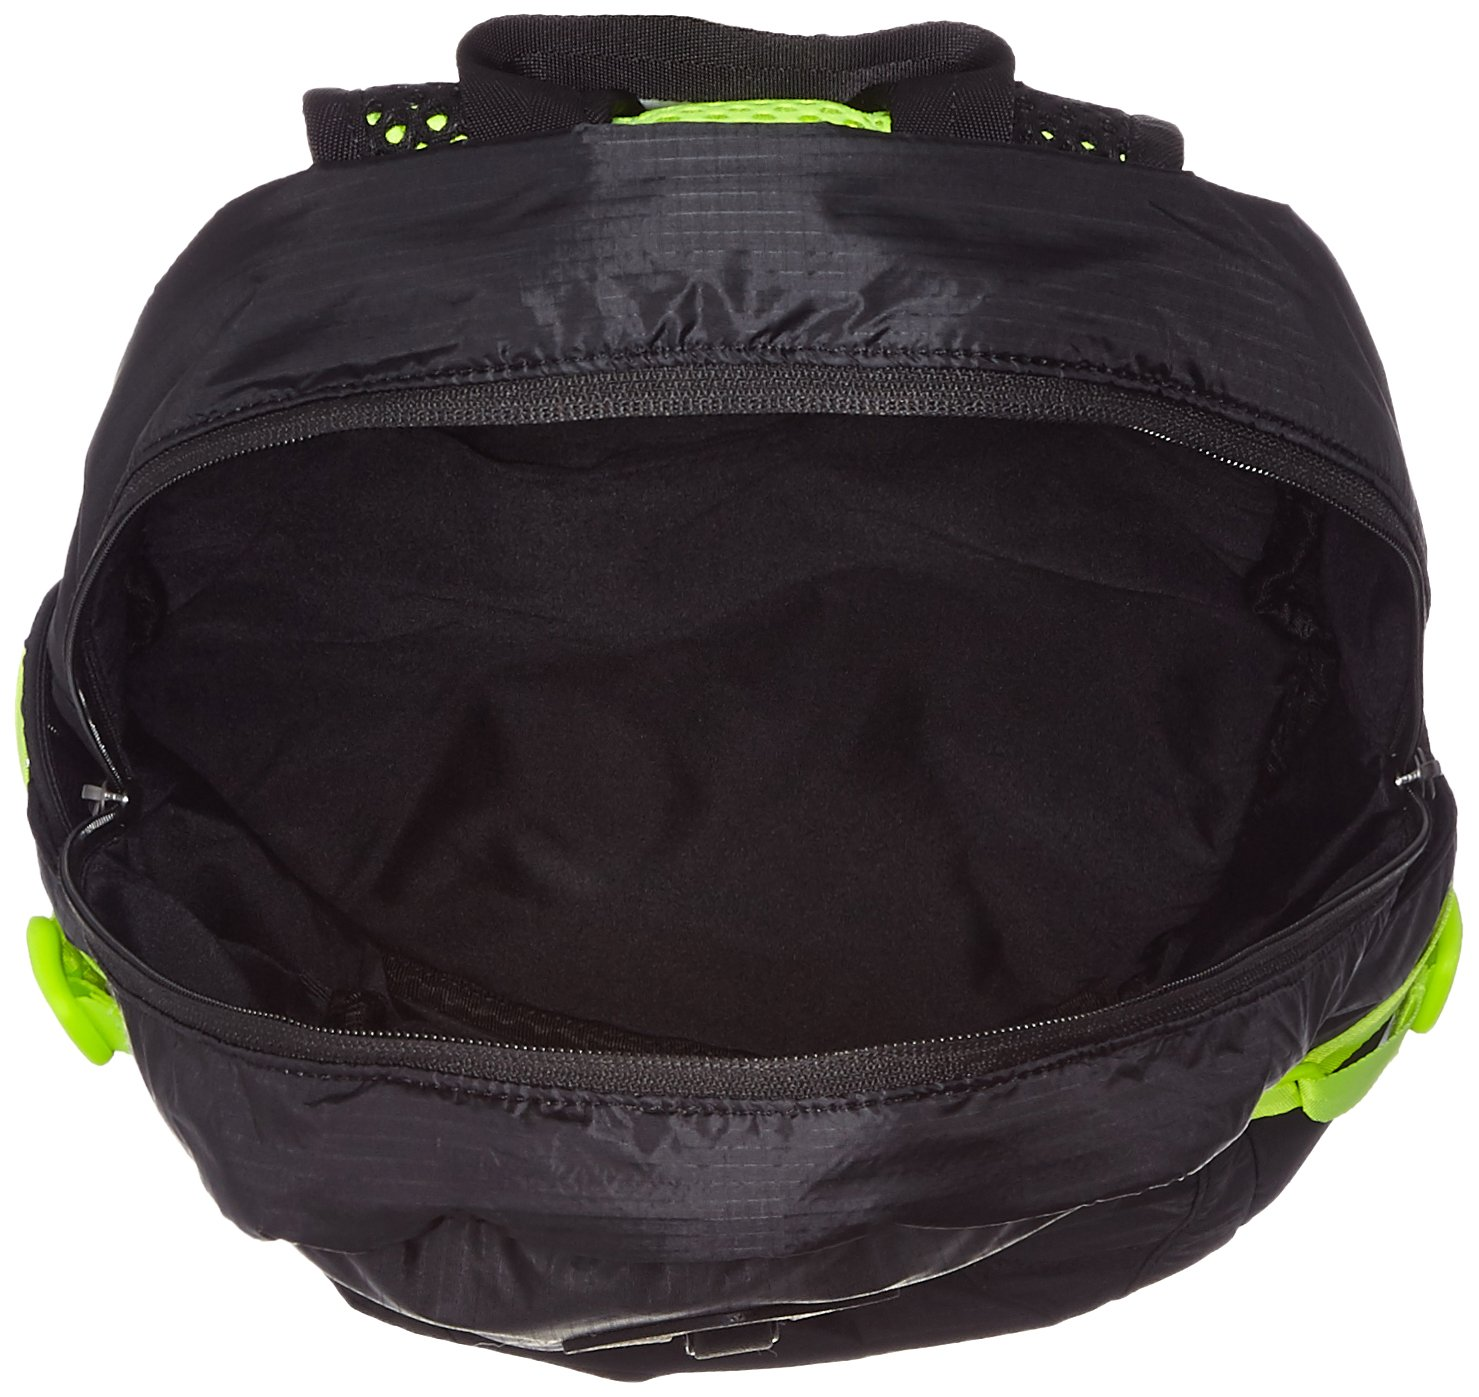 6920eb55c Amazon.com : Nike Vapor Lite Running Backpack : Sports & Outdoors